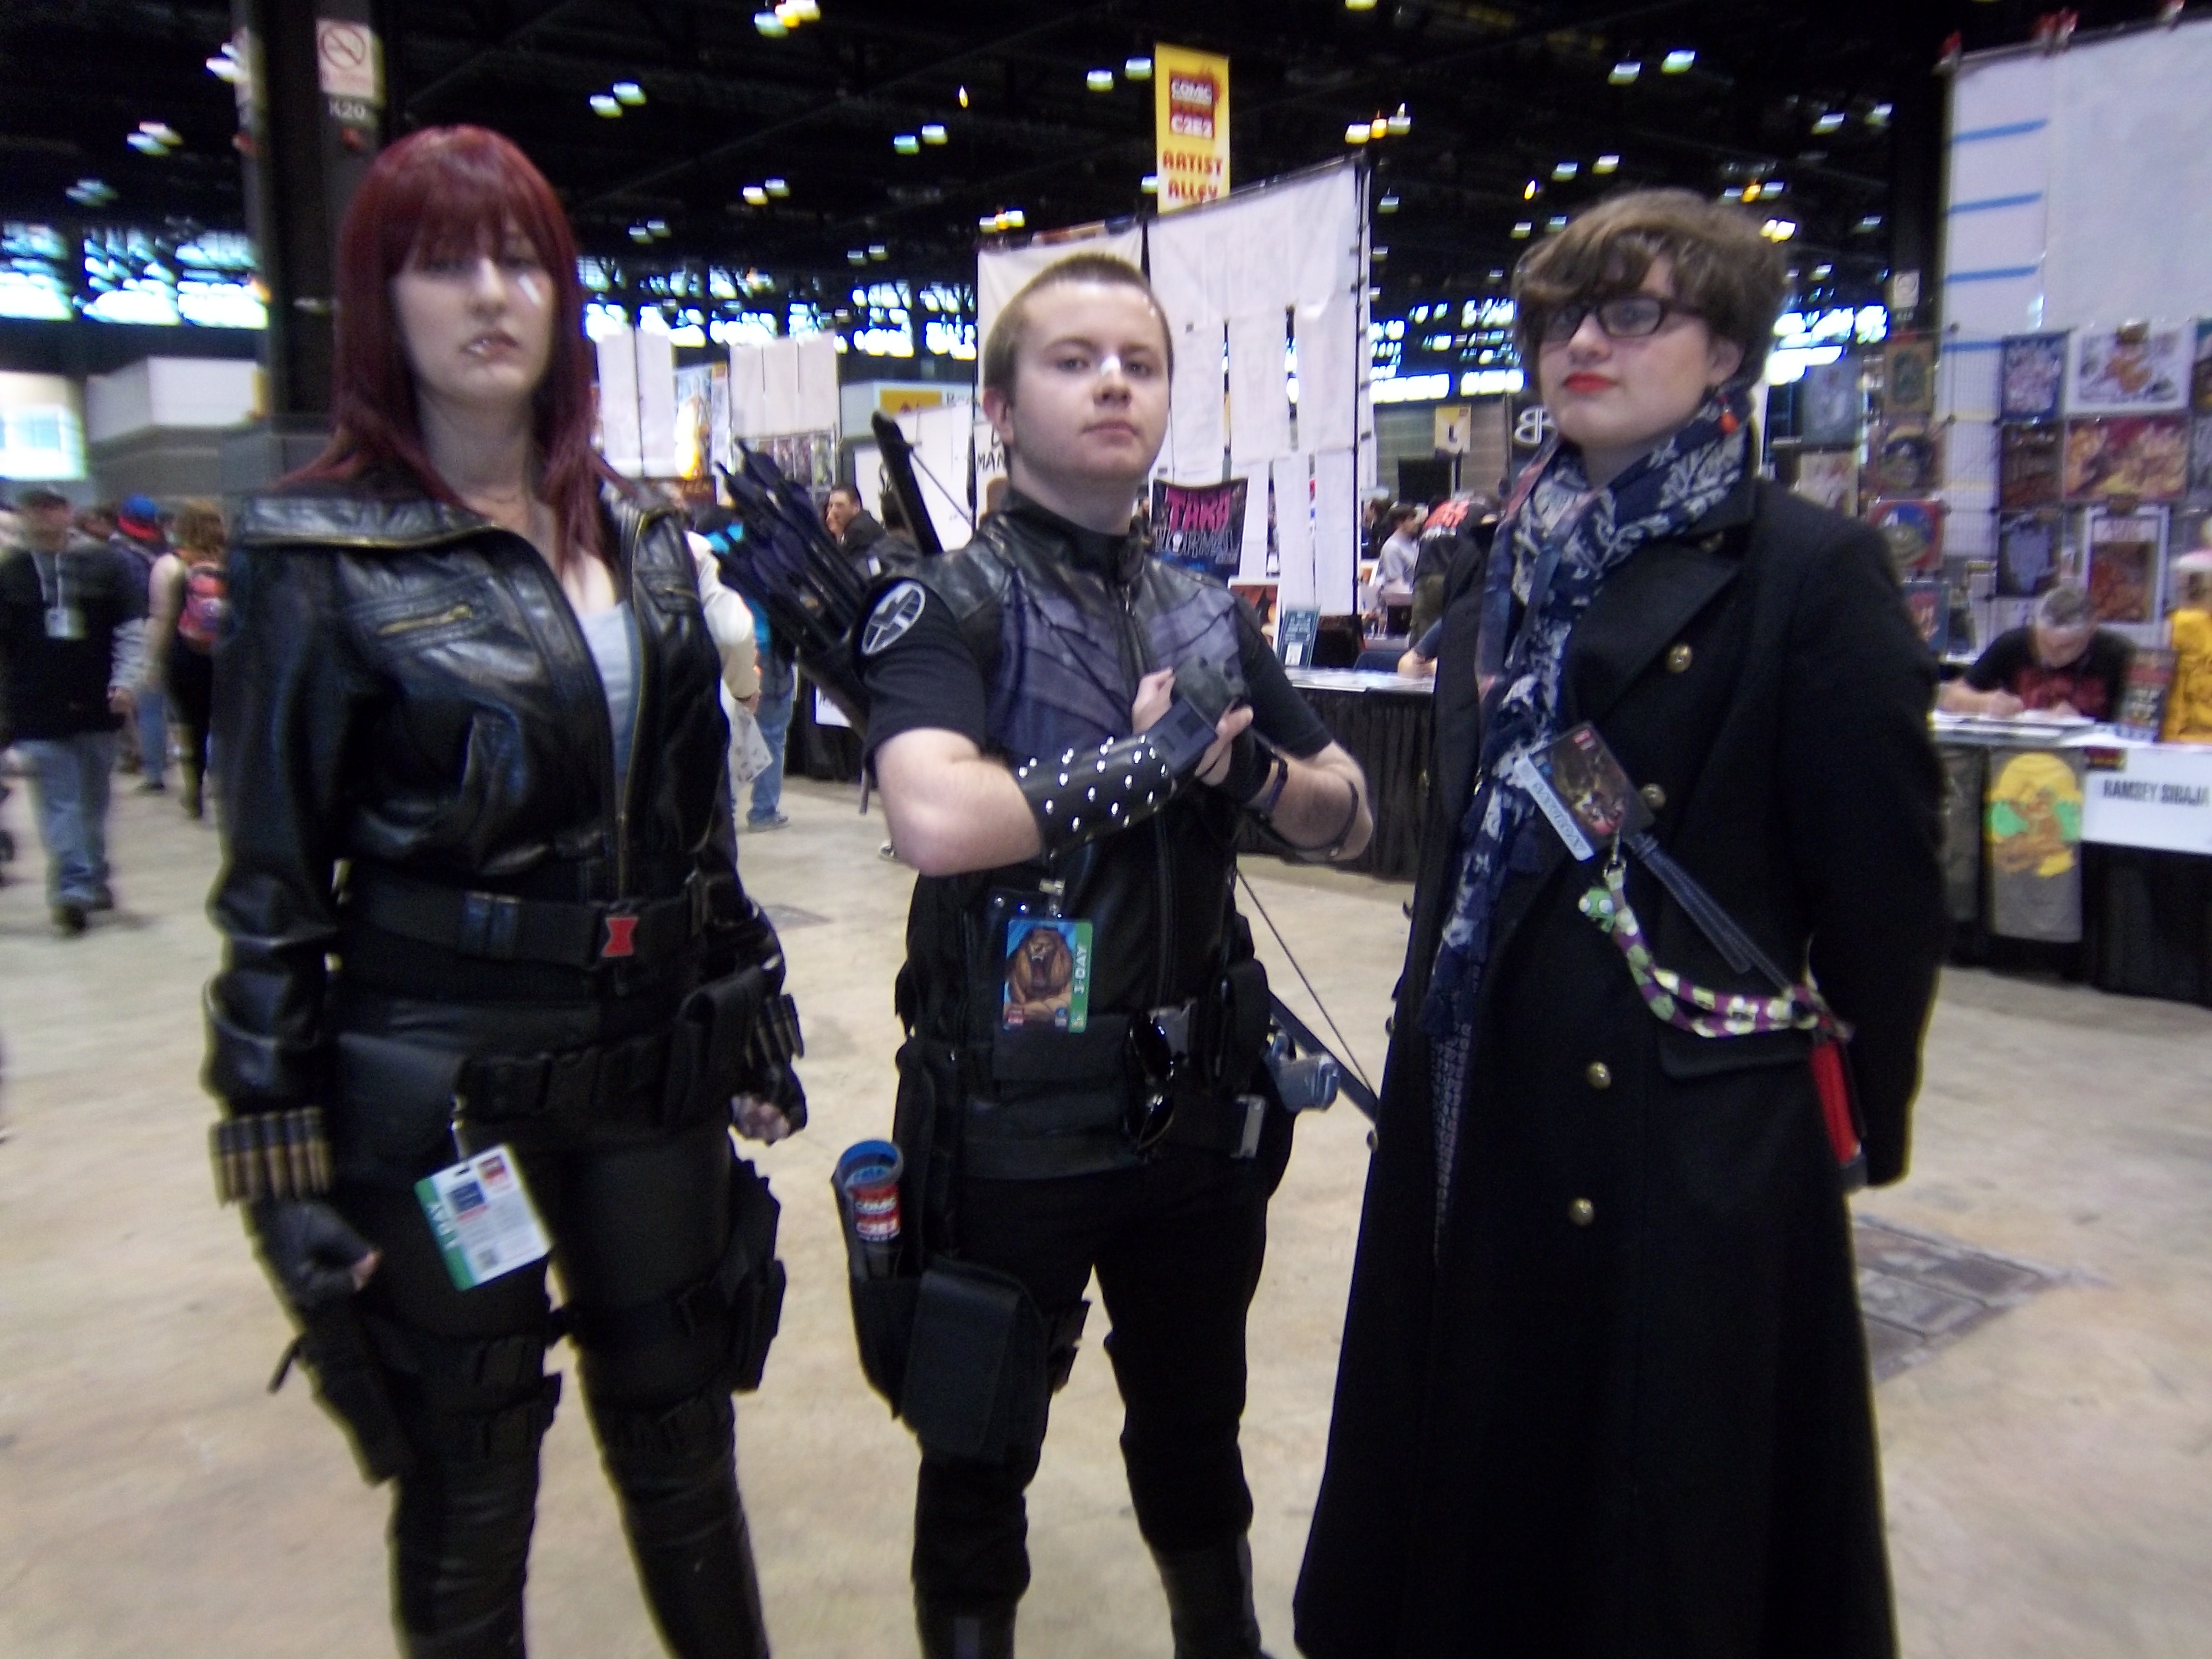 File:C2E2 (Day 2) 2014, Black Widow, Hawkeye, and another ...